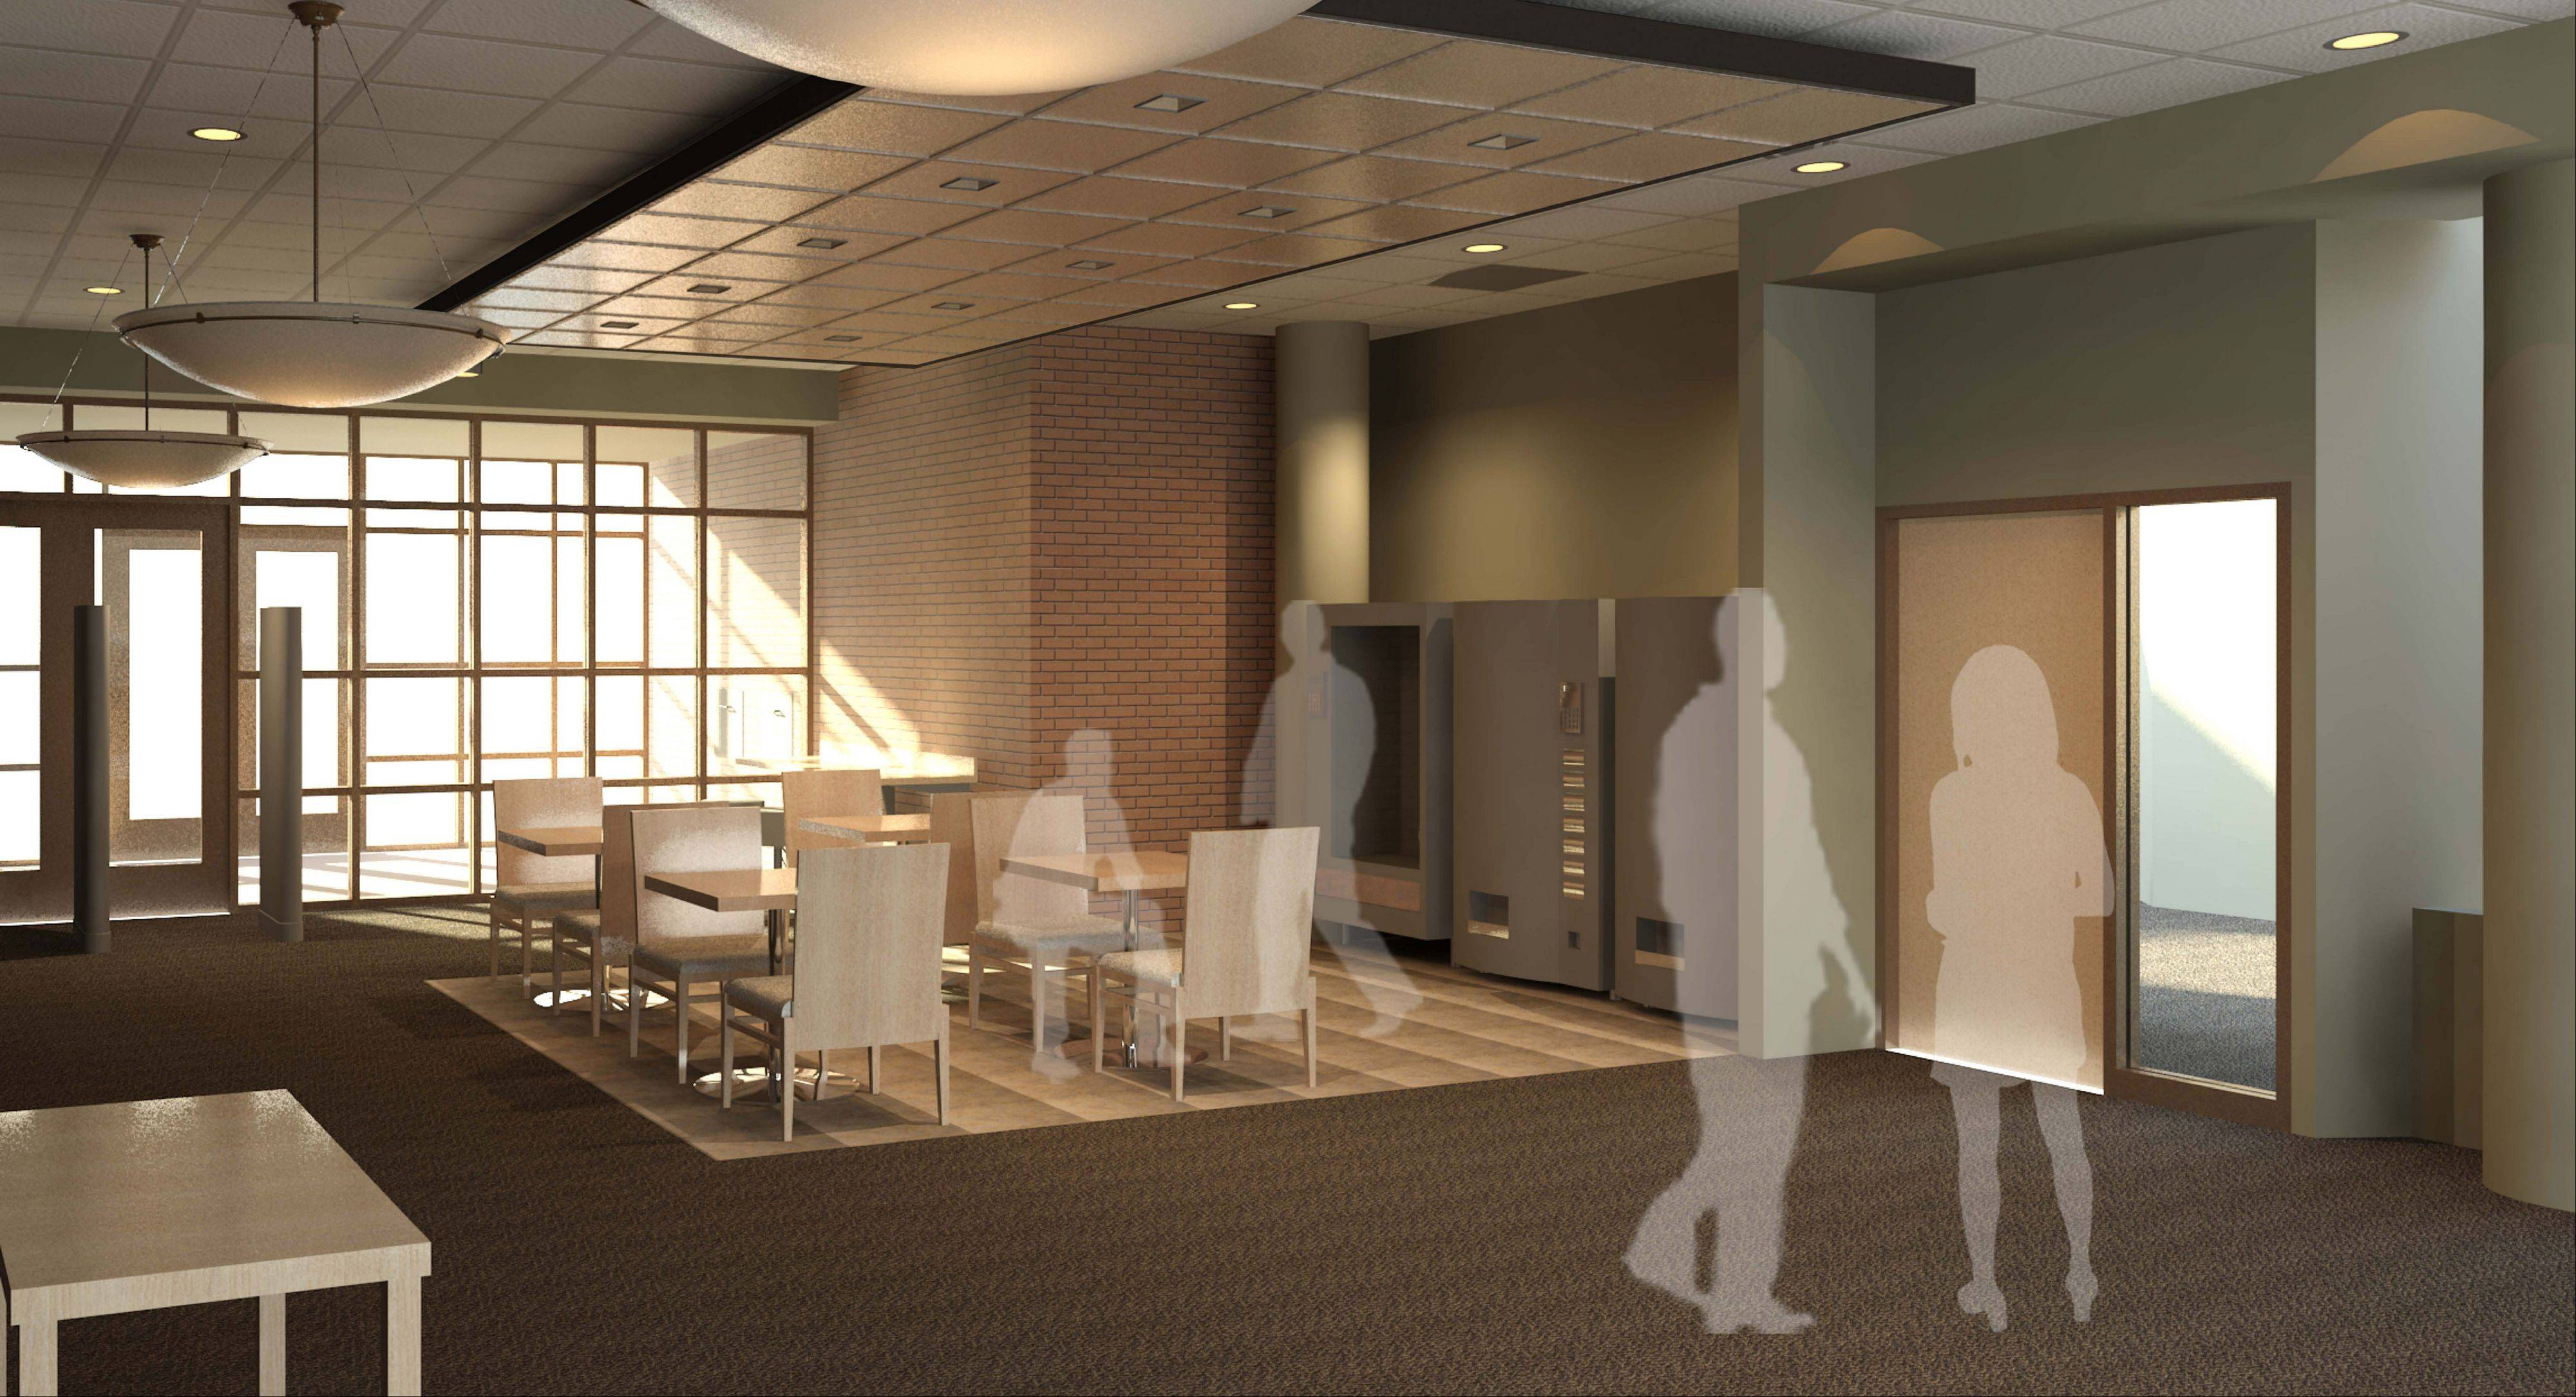 A rendering of the new lobby now being built at the main branch of the Algonquin Area Public Library District on Harnish Drive. The main branch will be closed for several days next week while workers reconfigure its double doors.